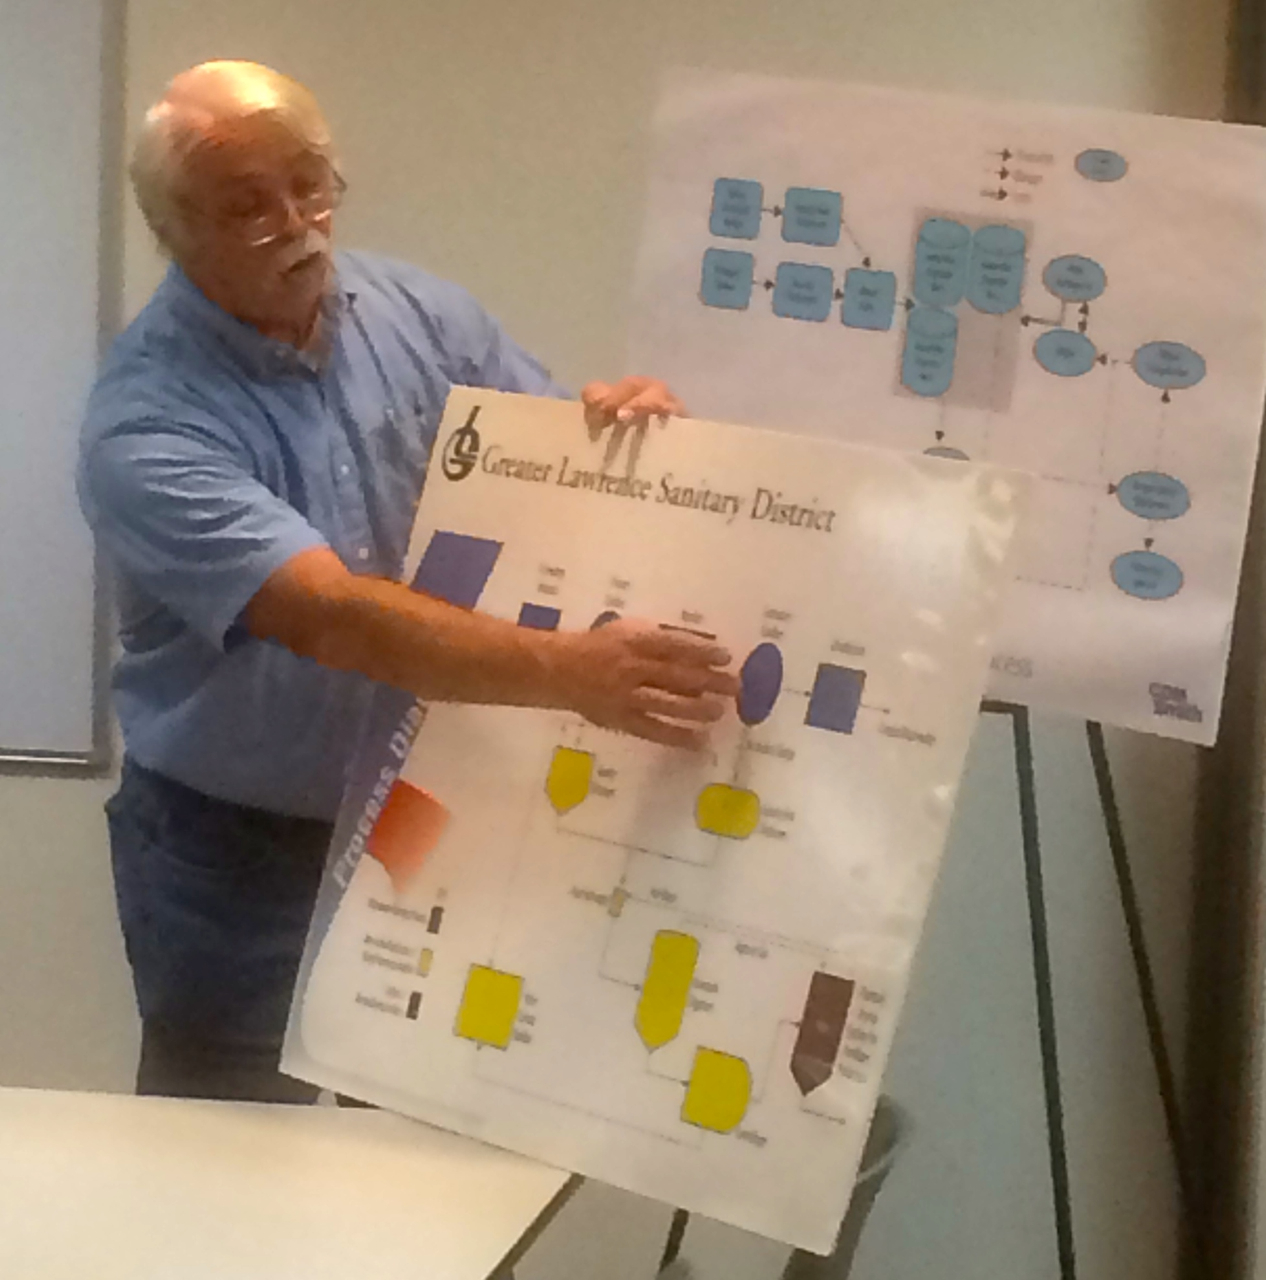 Richard Weare explains planned co-digestion project at GLSD REFOR15 tour.